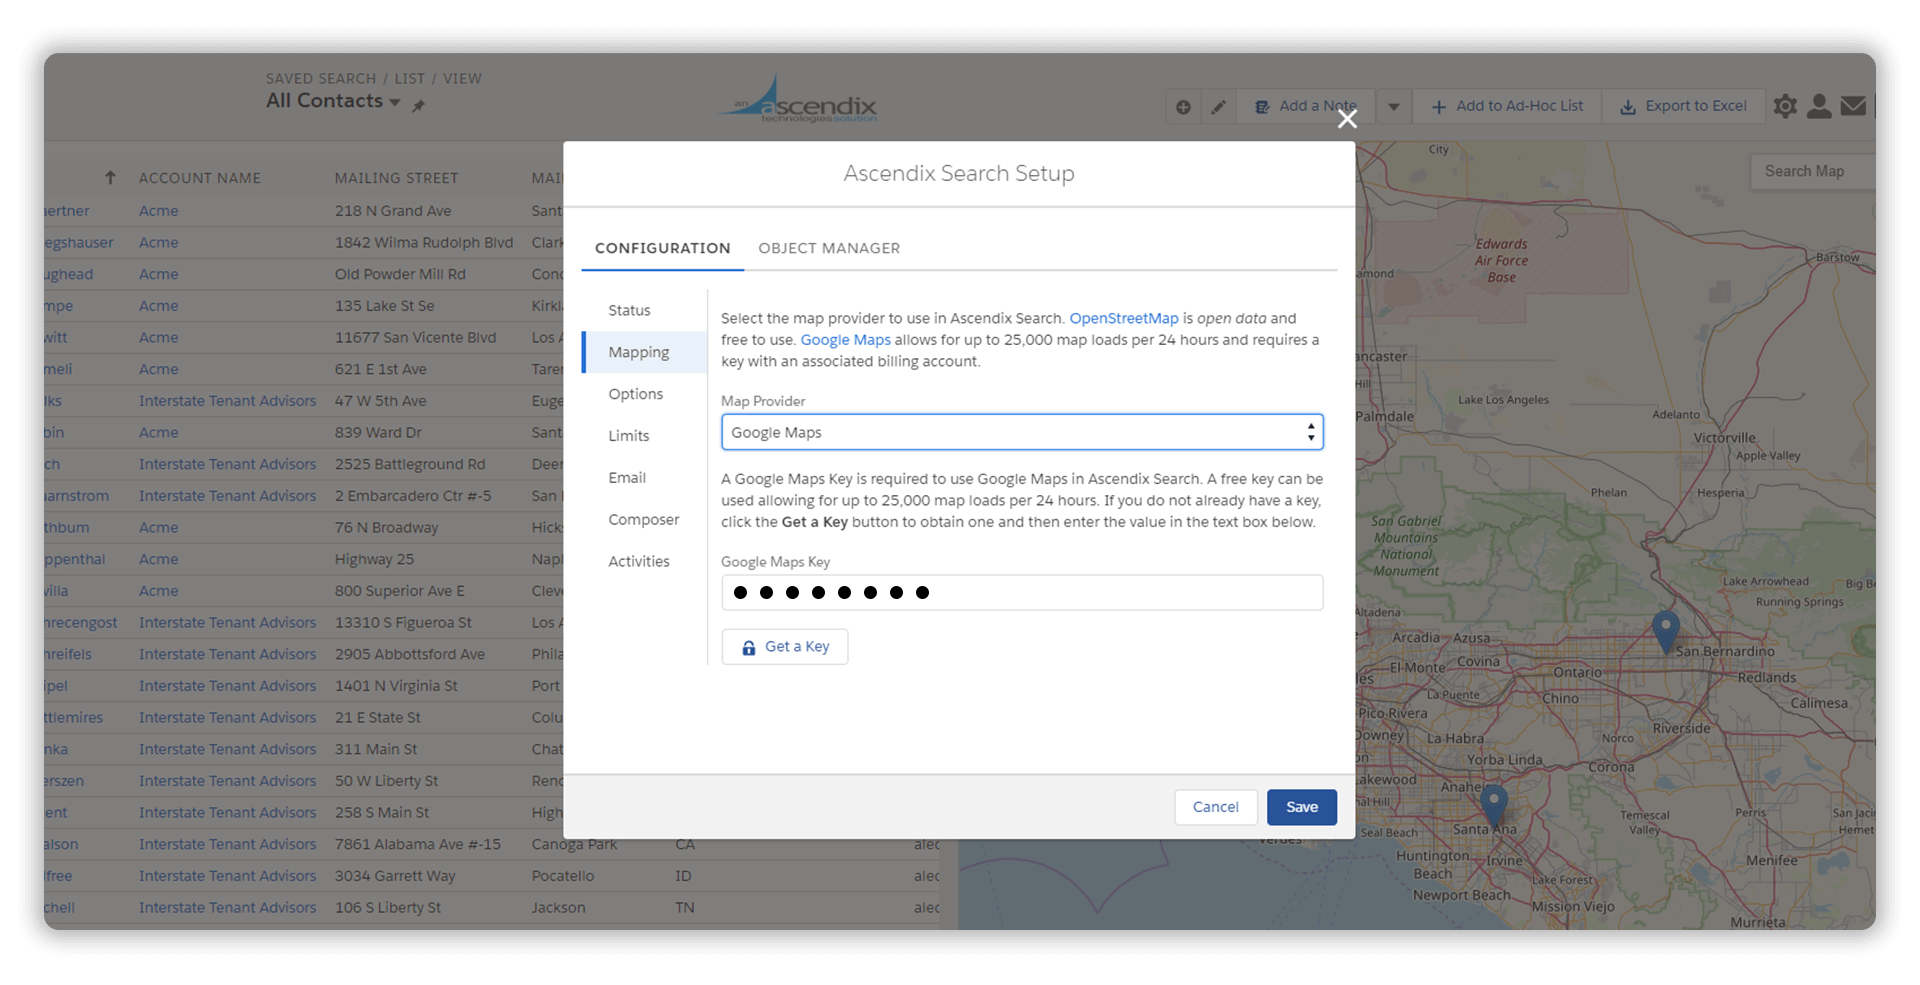 Selecting a Map Provider in Ascendix Search